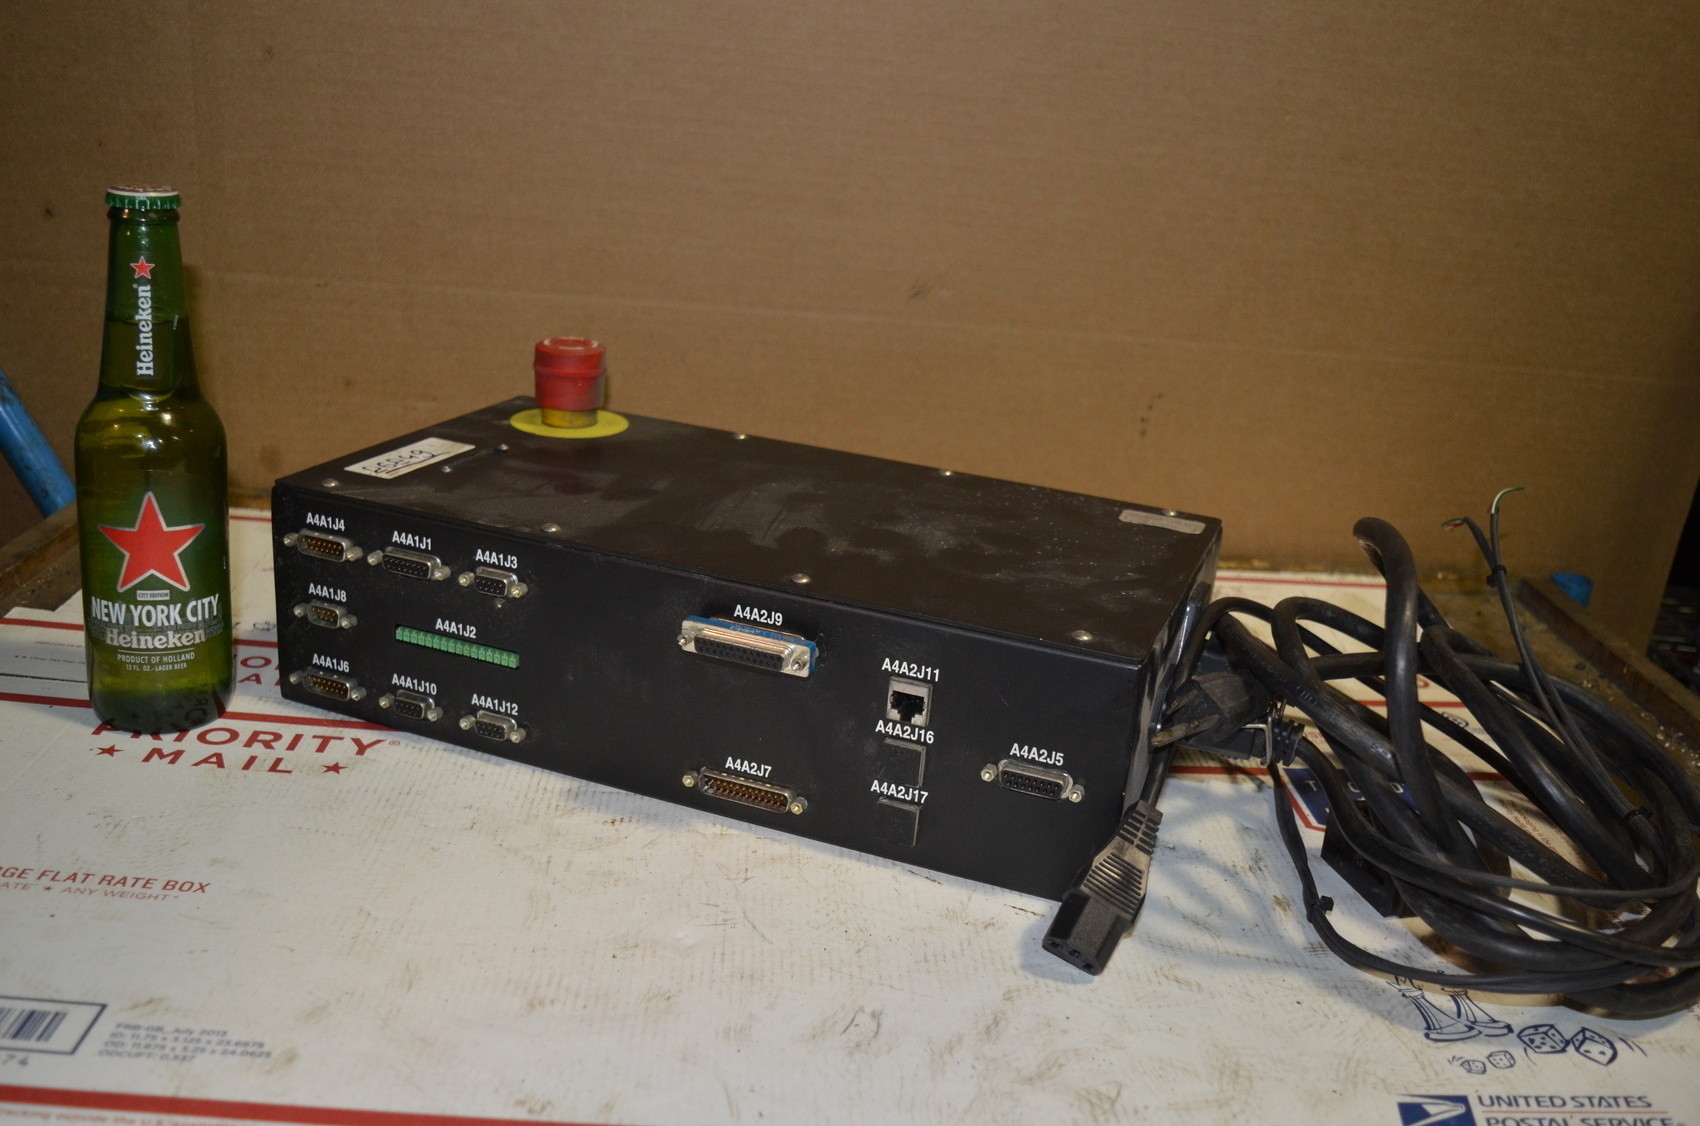 Diagraph PA5000LT CPU accy.6160530 rev B for LABEL MAKER